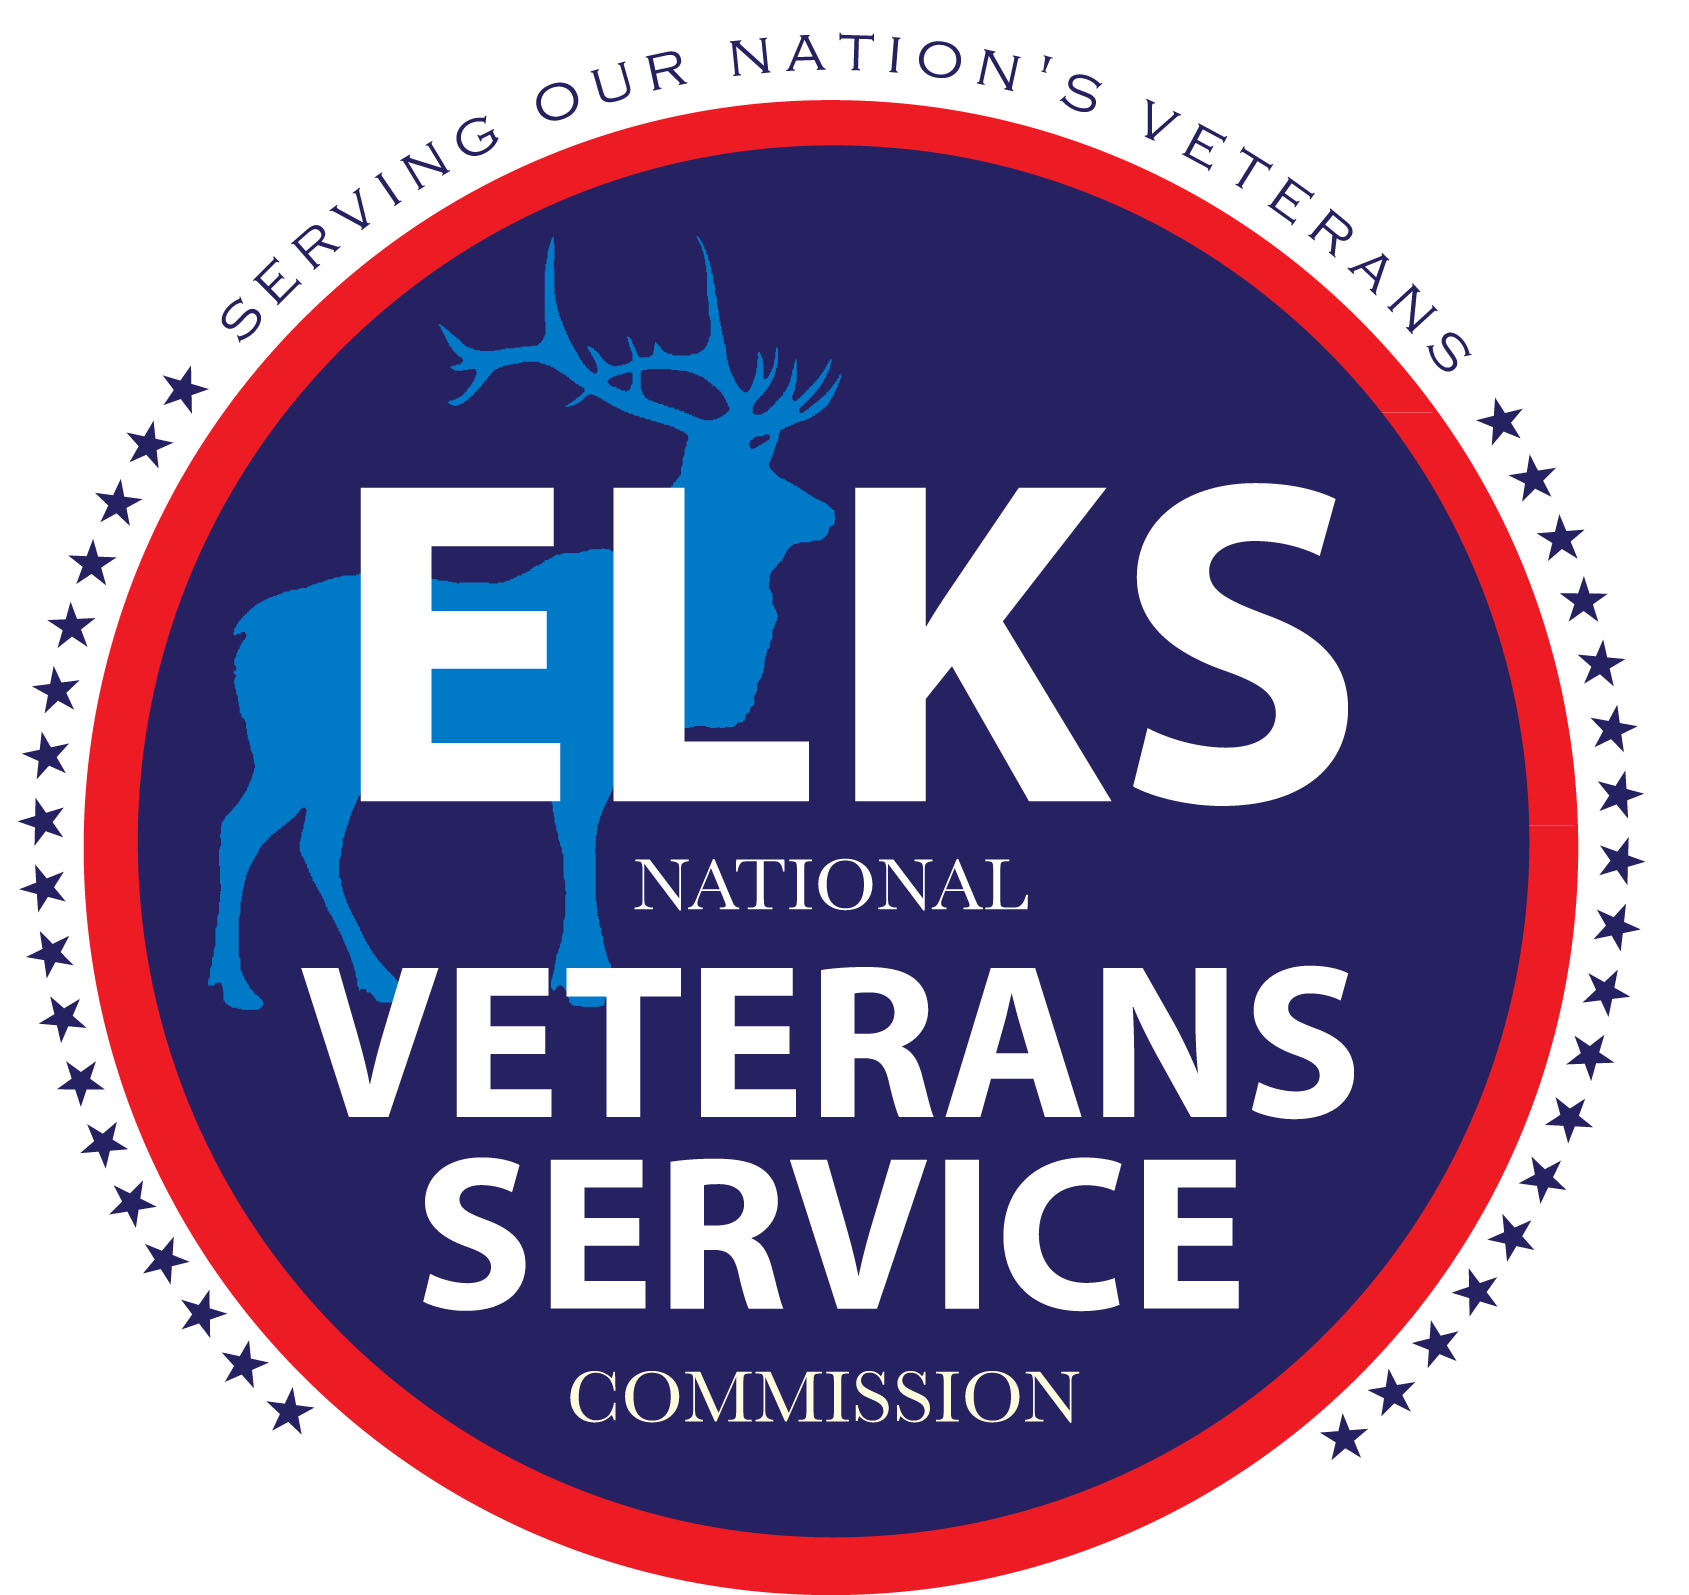 elks button blue